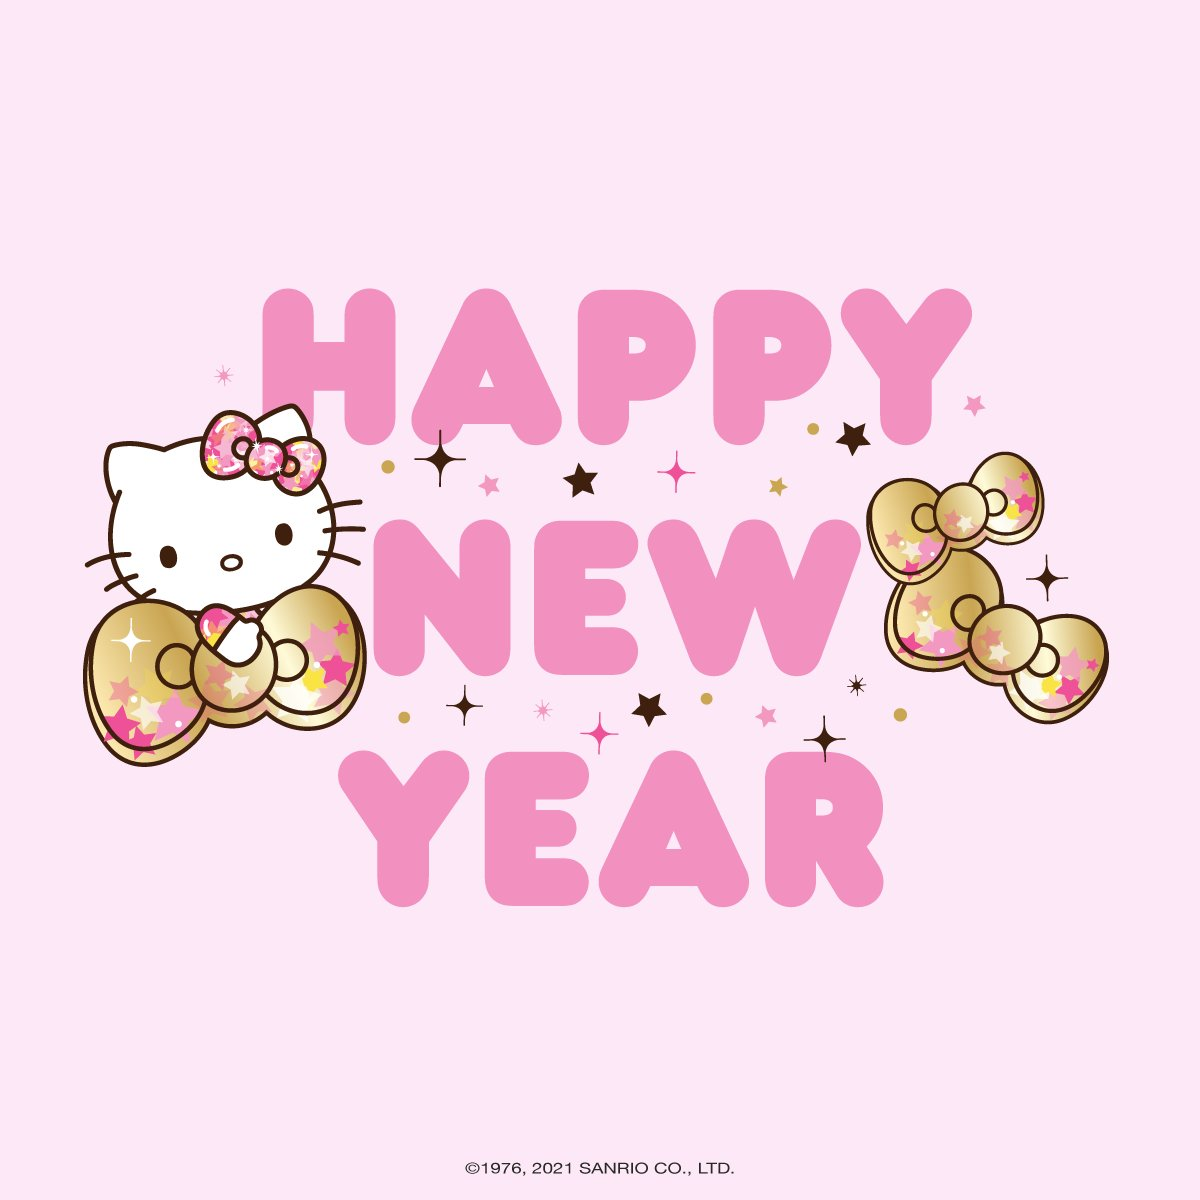 Hello 2021! 💖 What are your intentions for the new year?